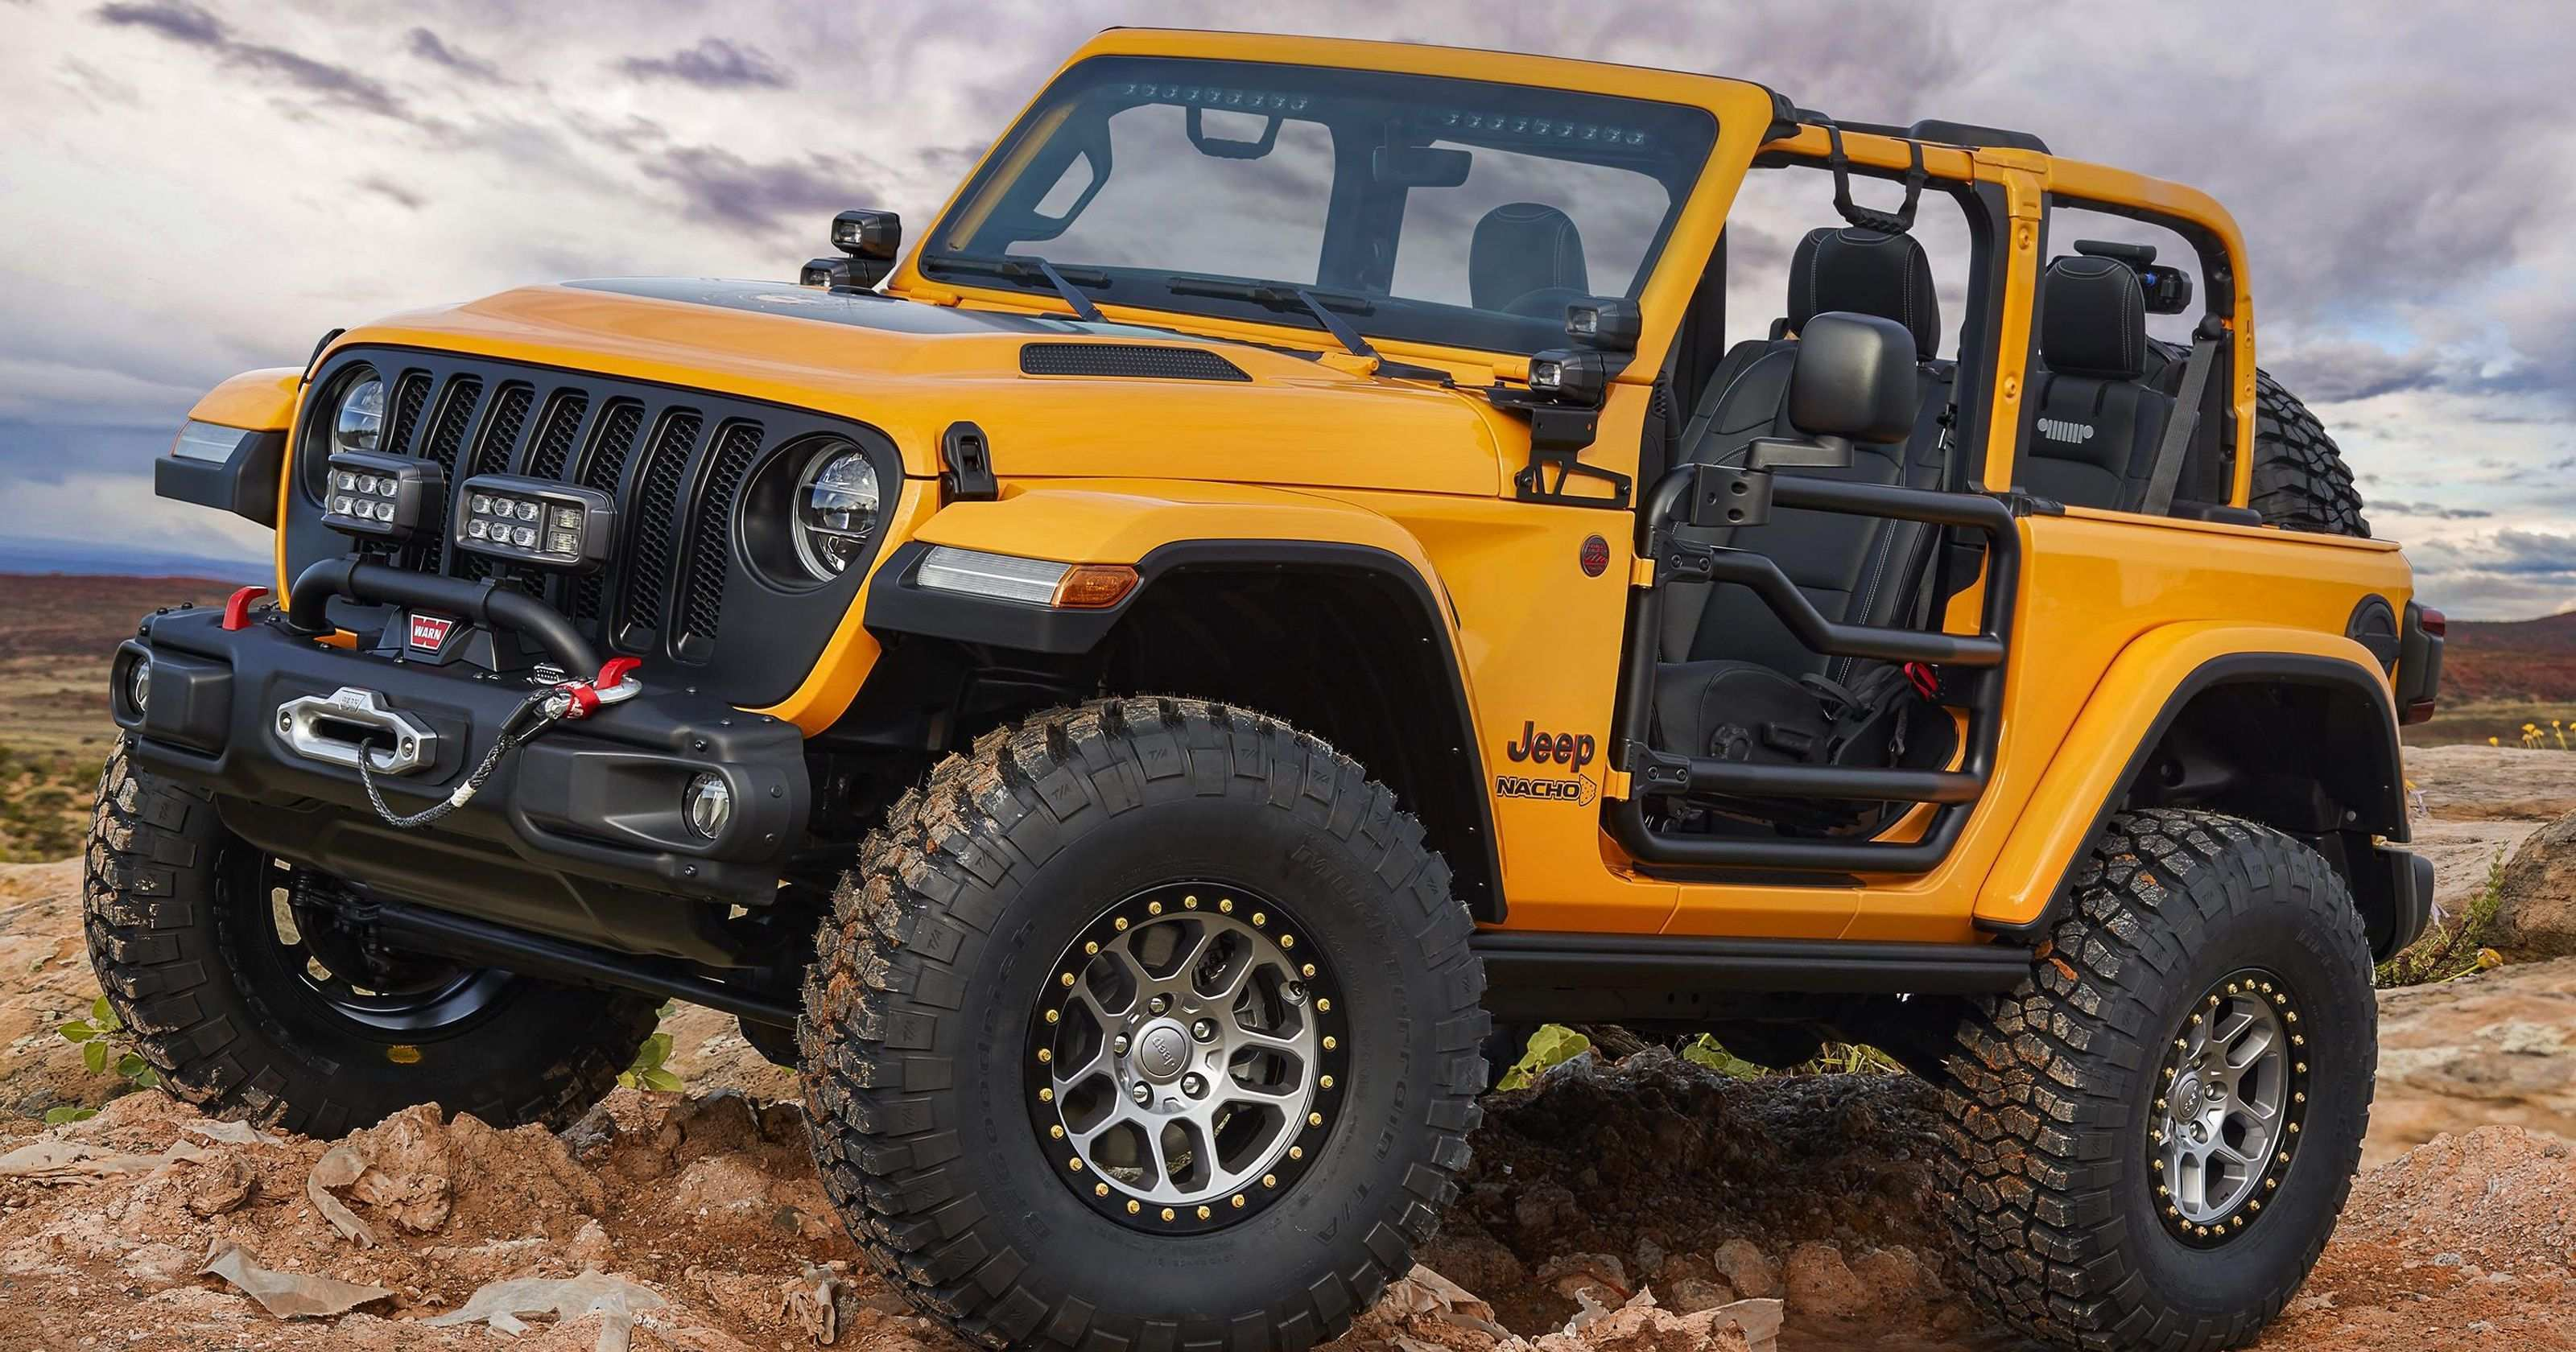 29 All New Jeep Moab 2020 Concept